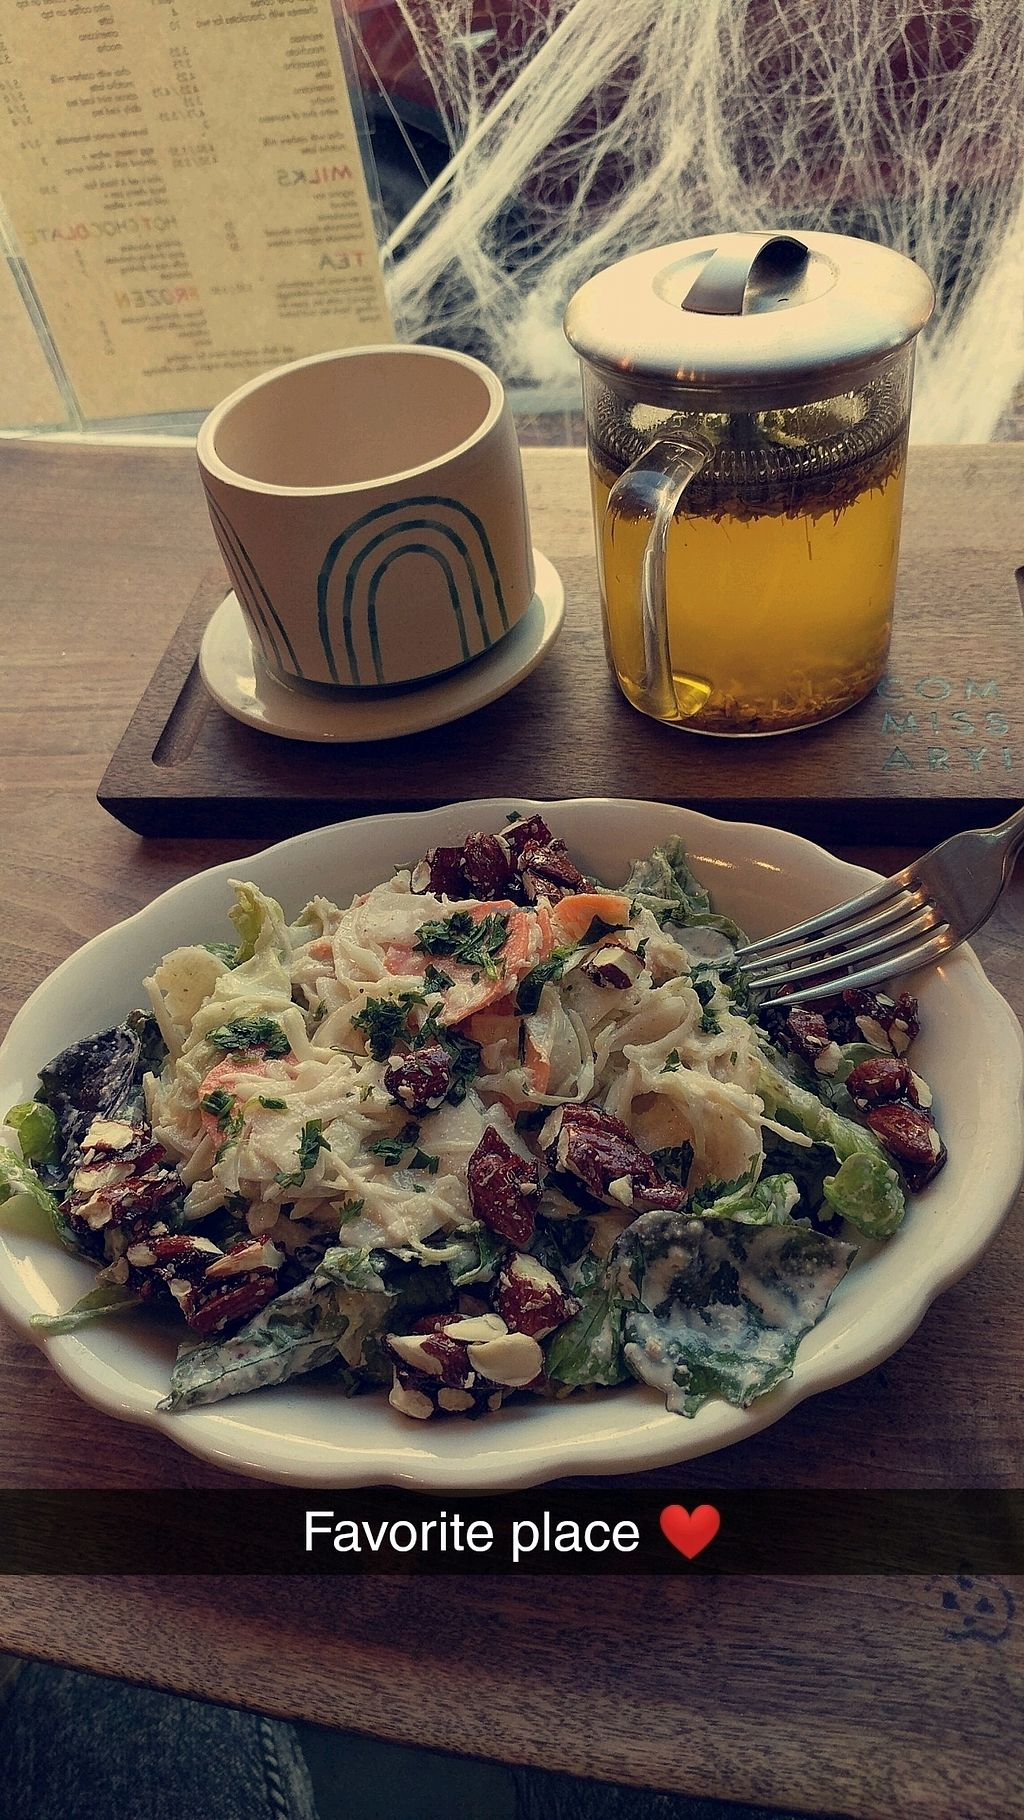 """Photo of Lagusta's Luscious Commissary  by <a href=""""/members/profile/GiselleBenitez"""">GiselleBenitez</a> <br/>delicious salad and some turmeric tea! <br/> December 9, 2017  - <a href='/contact/abuse/image/76064/333648'>Report</a>"""